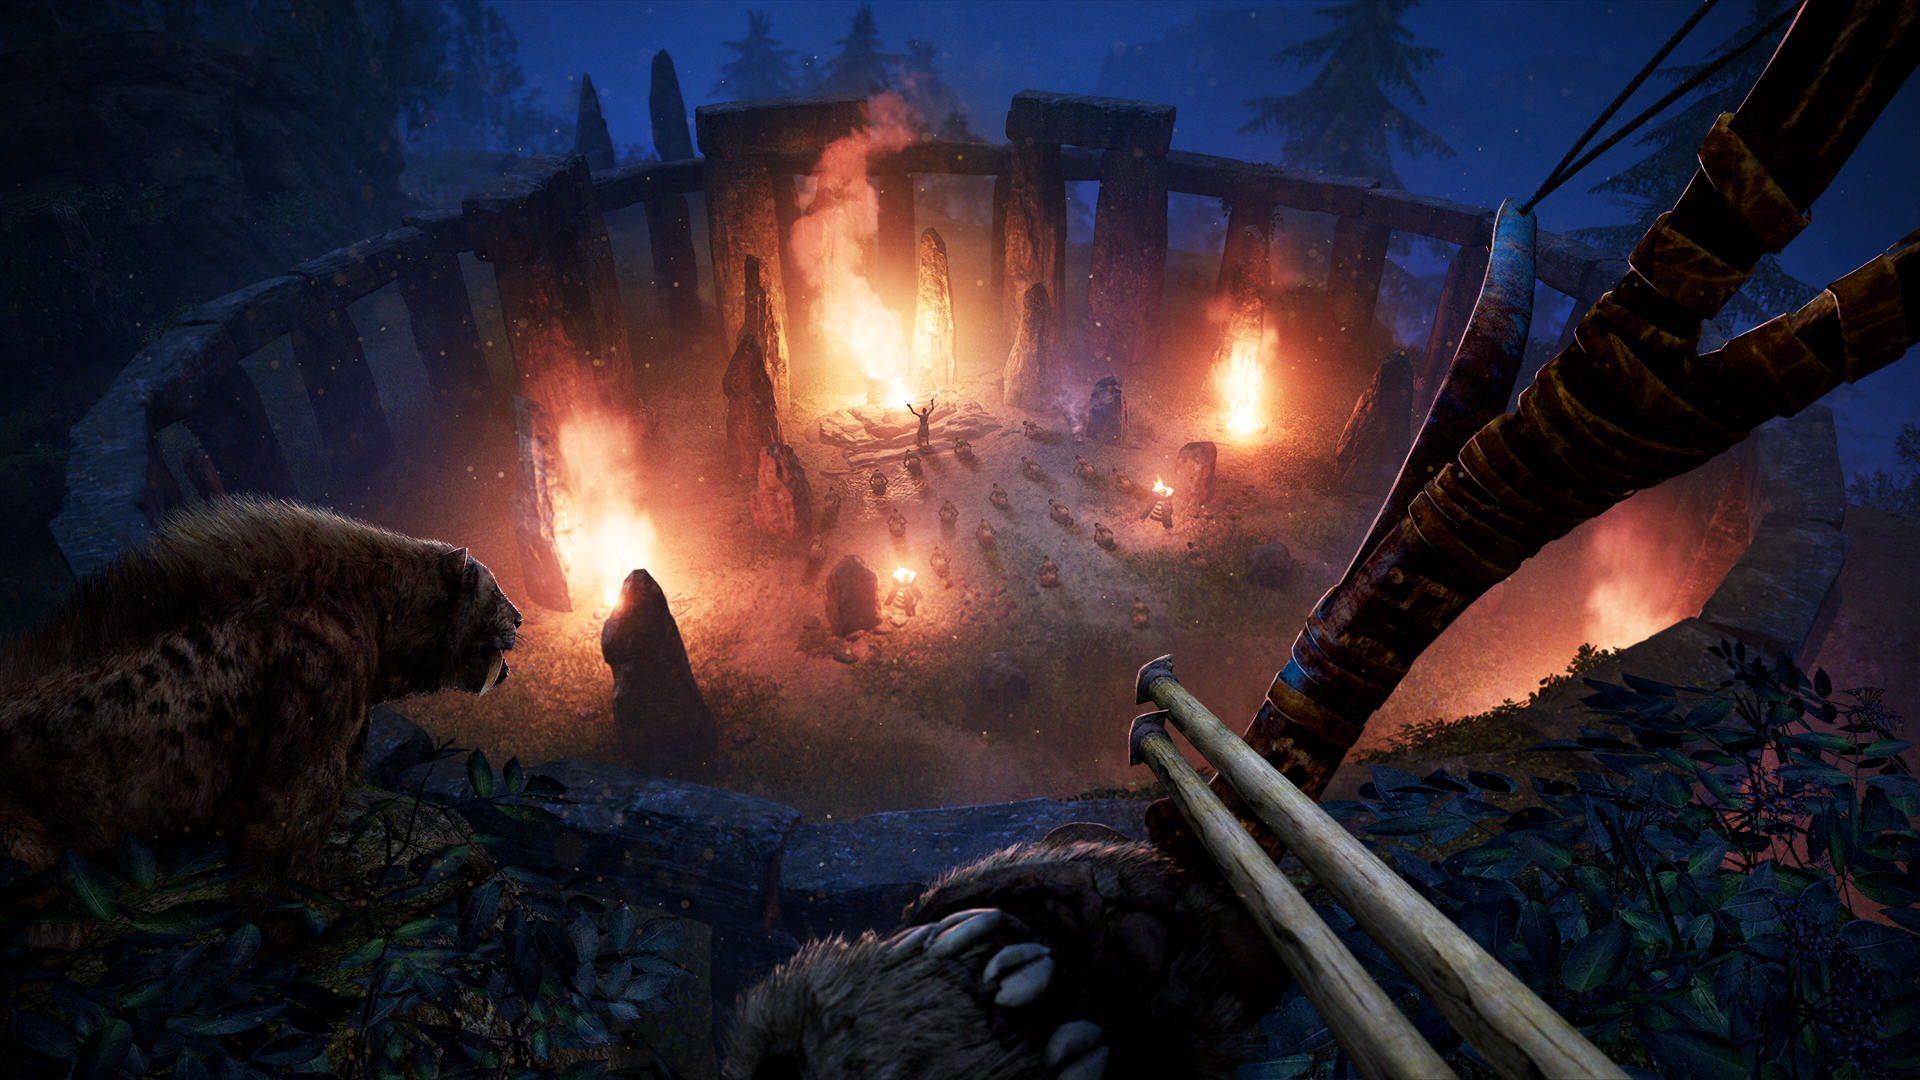 An Exclusive Look At Far Cry Primal Ahead Of Release Day FCP 06 Ritual Attack Screenshots PREVIEW PR 160126 6pm CET 1453716683